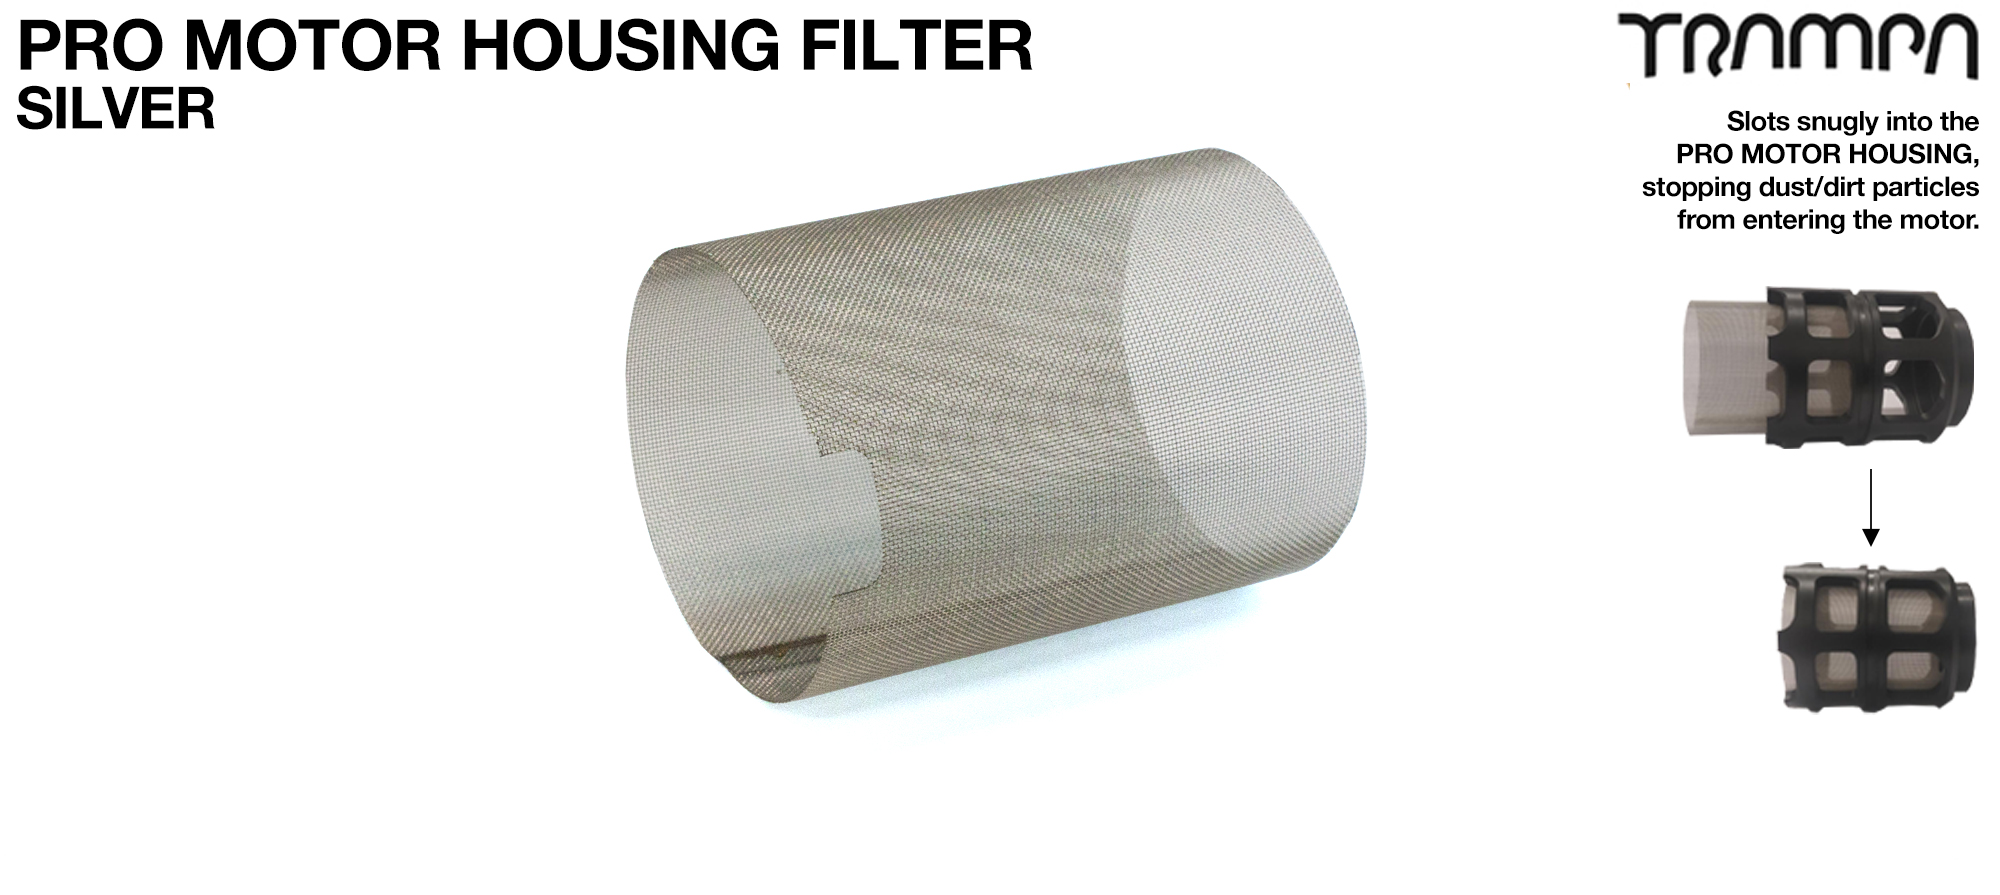 Motor protection Cover MESH FILTER - SILVER